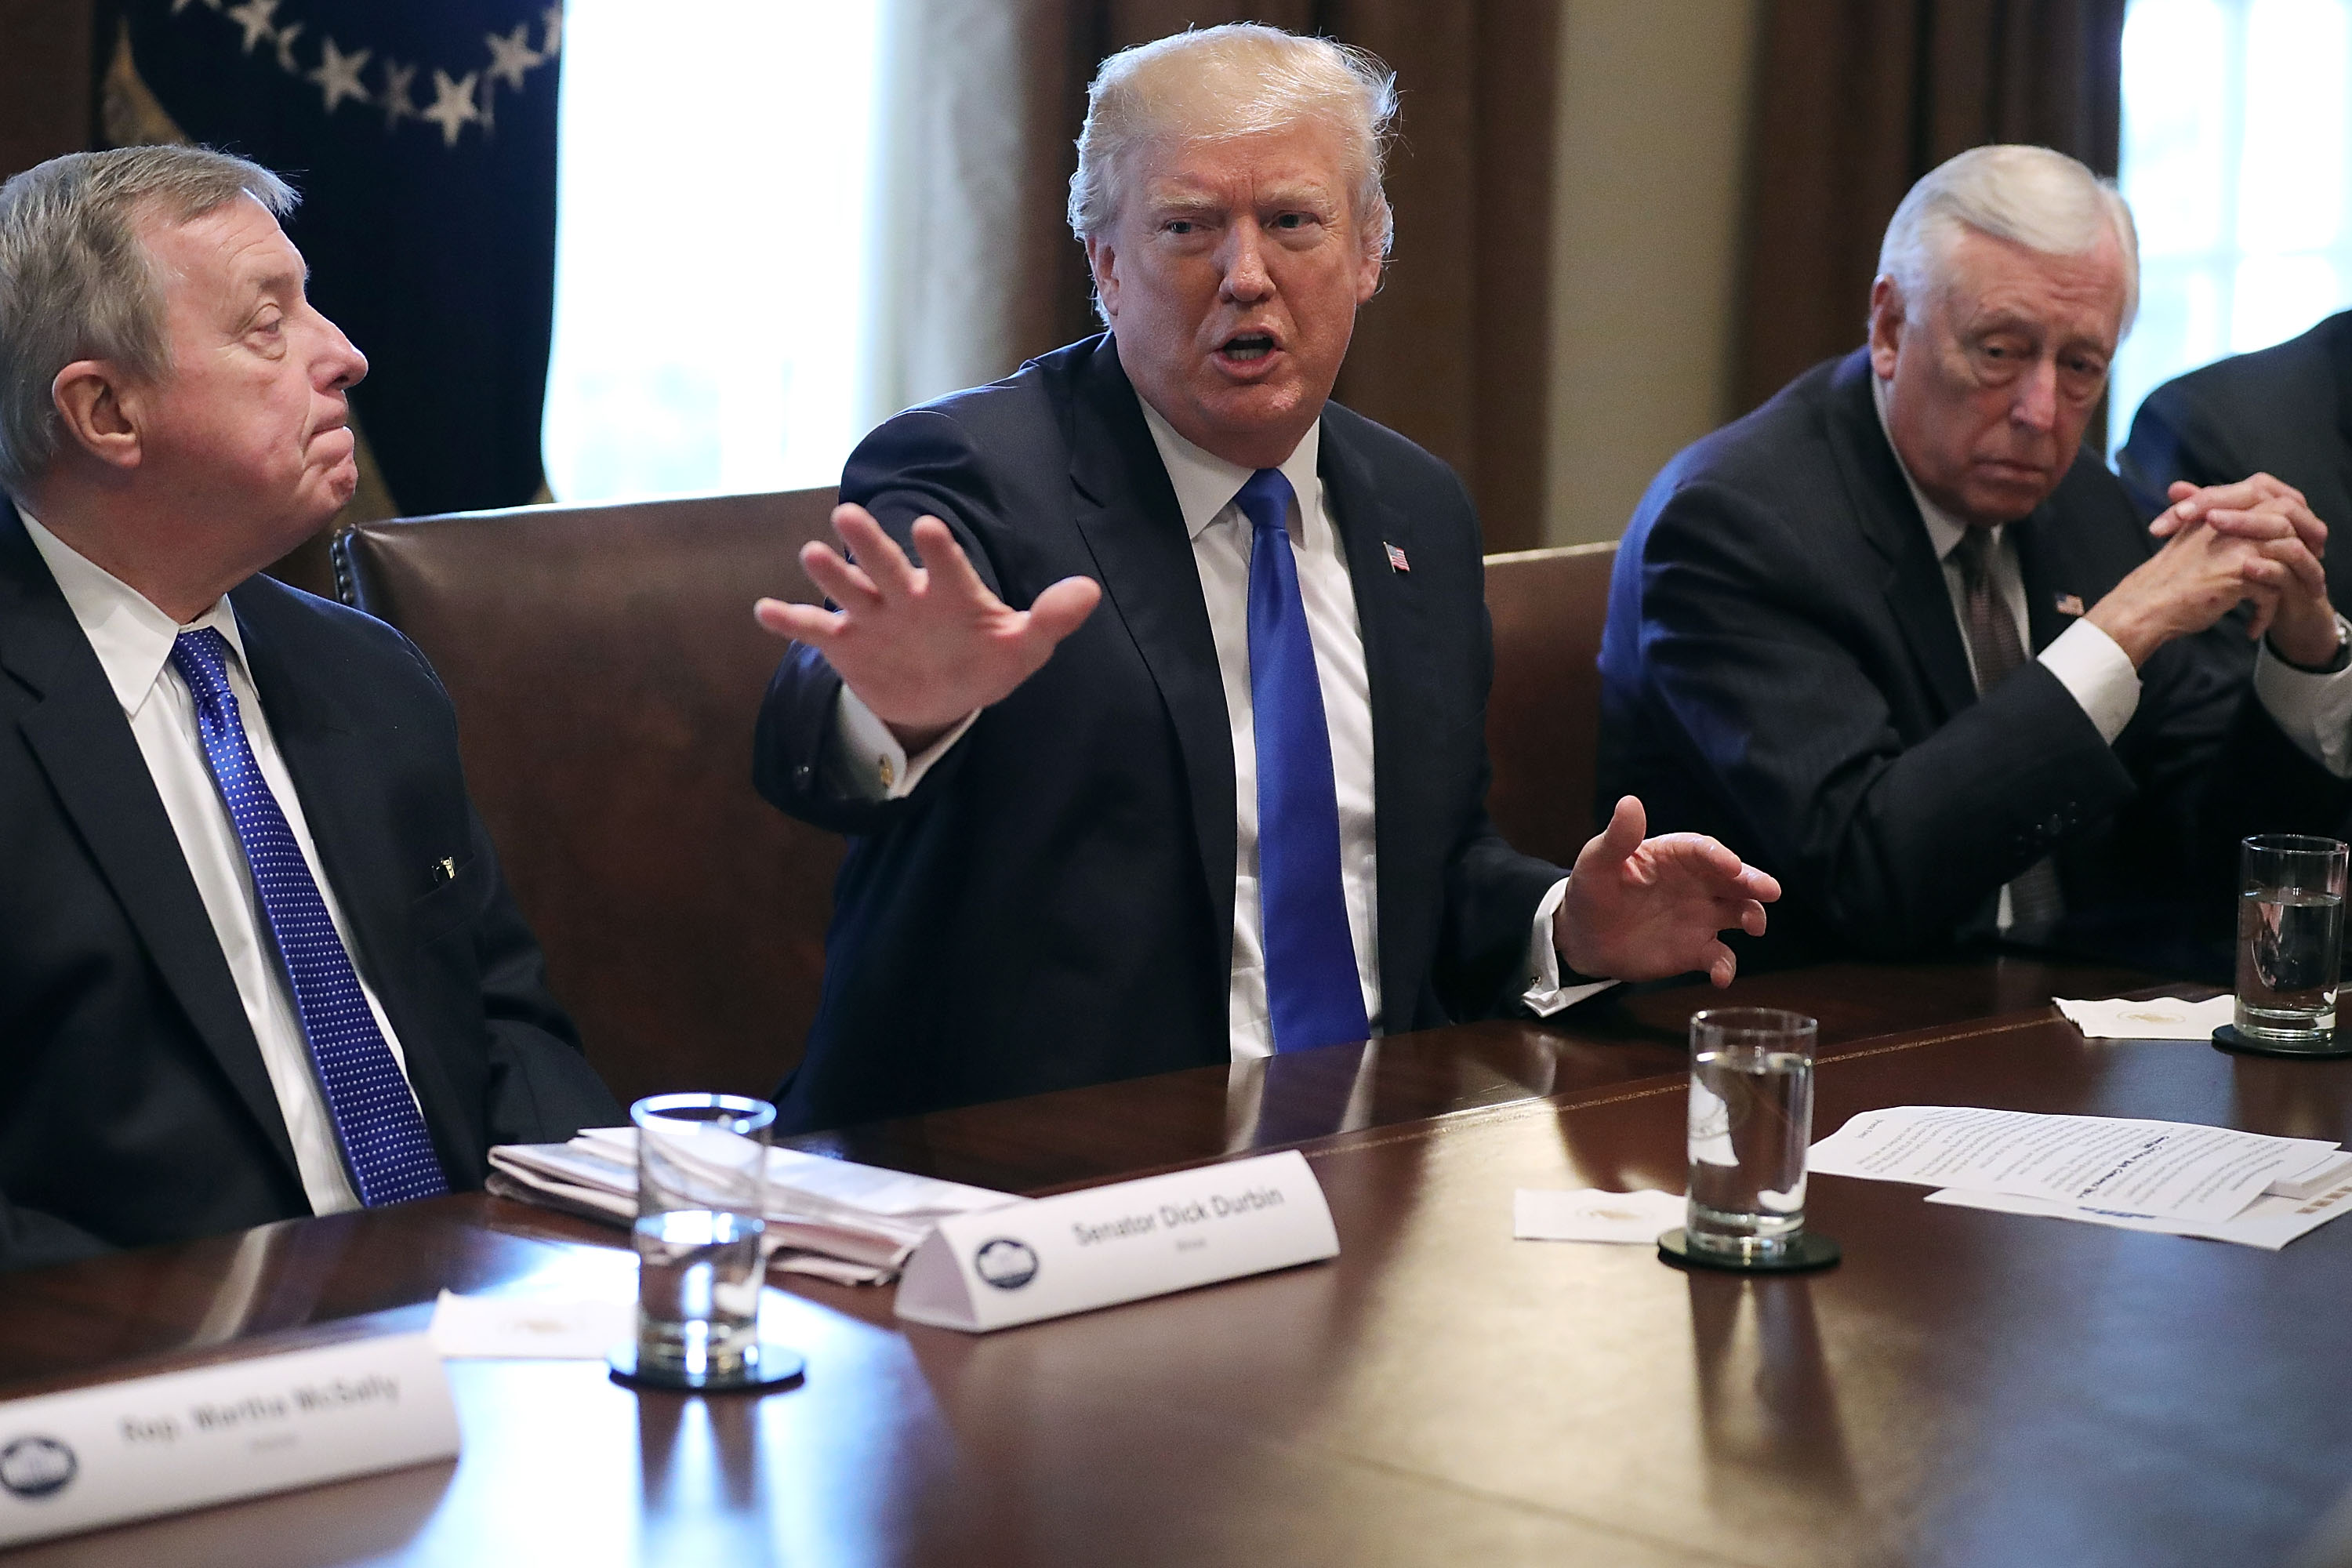 U.S. President Donald Trump (C) presides over a meeting about immigration with Republican and Democrat members of Congress, including Senate Minority Whip Richard Durbin (D-IL) (L) and House Minority Whip Steny Hoyer (D-MD) in the Cabinet Room at the White House January 9, 2018 in Washington, DC.